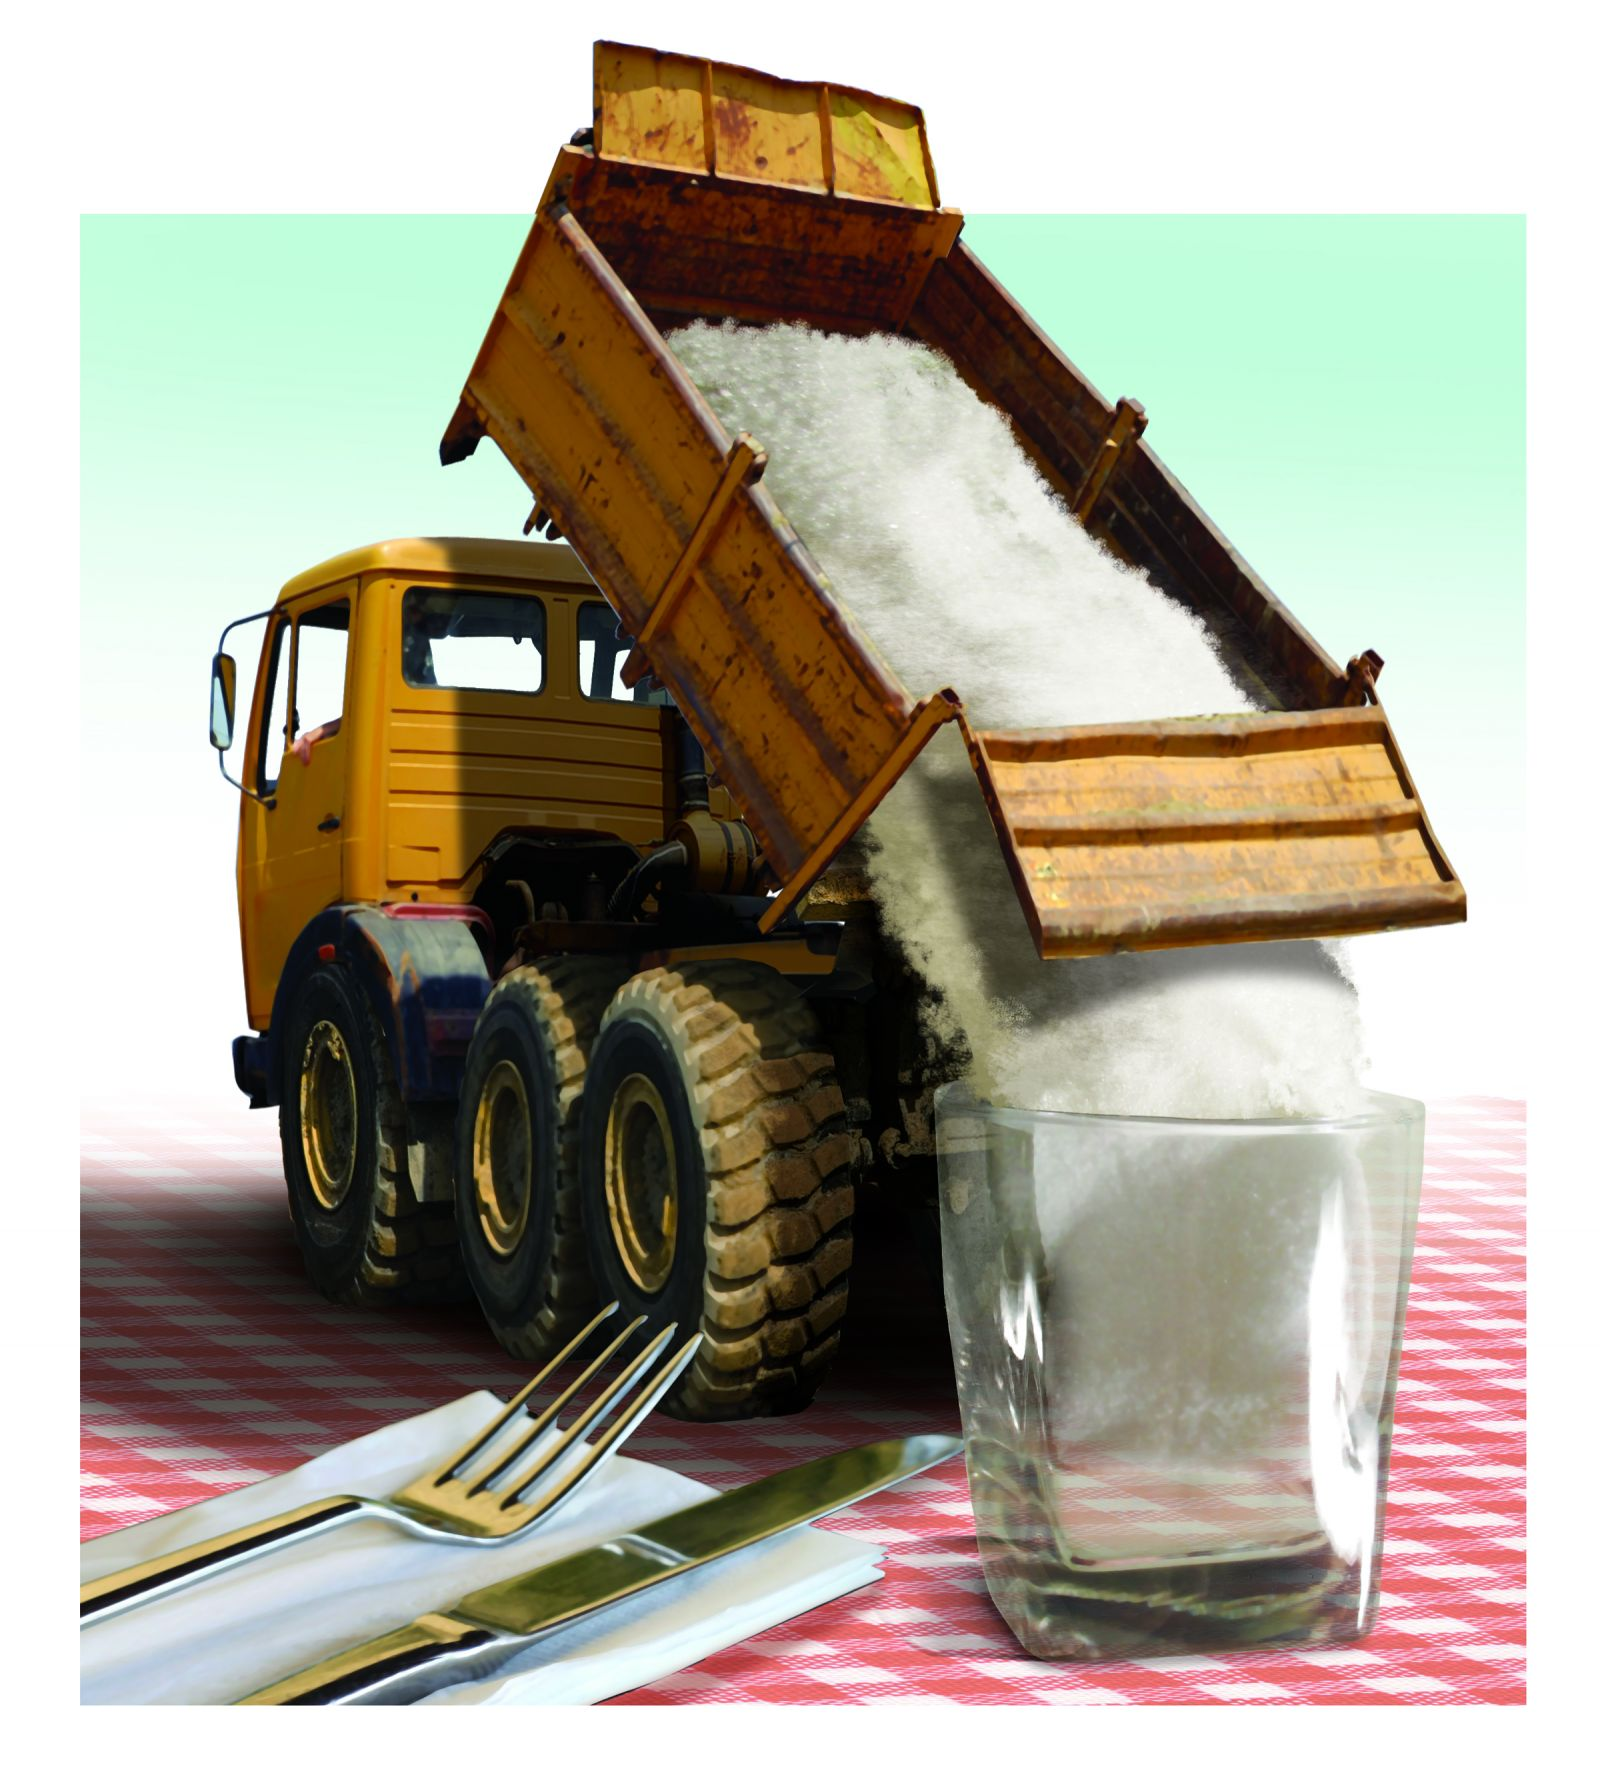 Illustration of miniature salt truck pouring salt into water glass